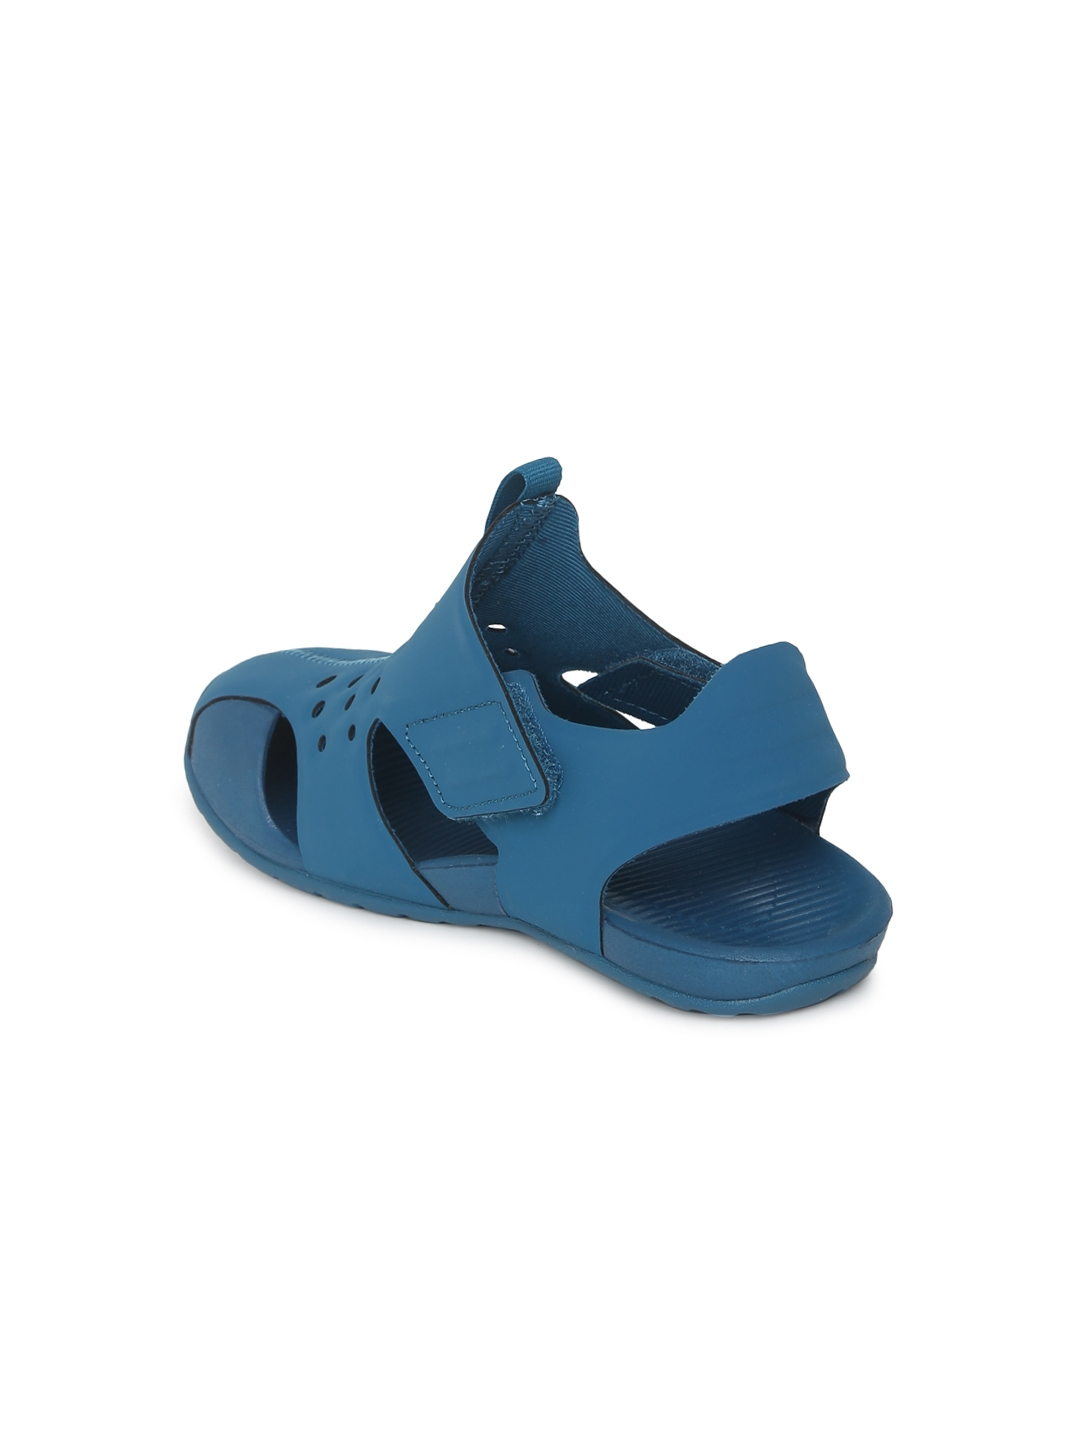 a875fcfd2fd061 Buy Nike Boys Blue Sunray Protect 2 Sports Sandals - Sports Sandals ...